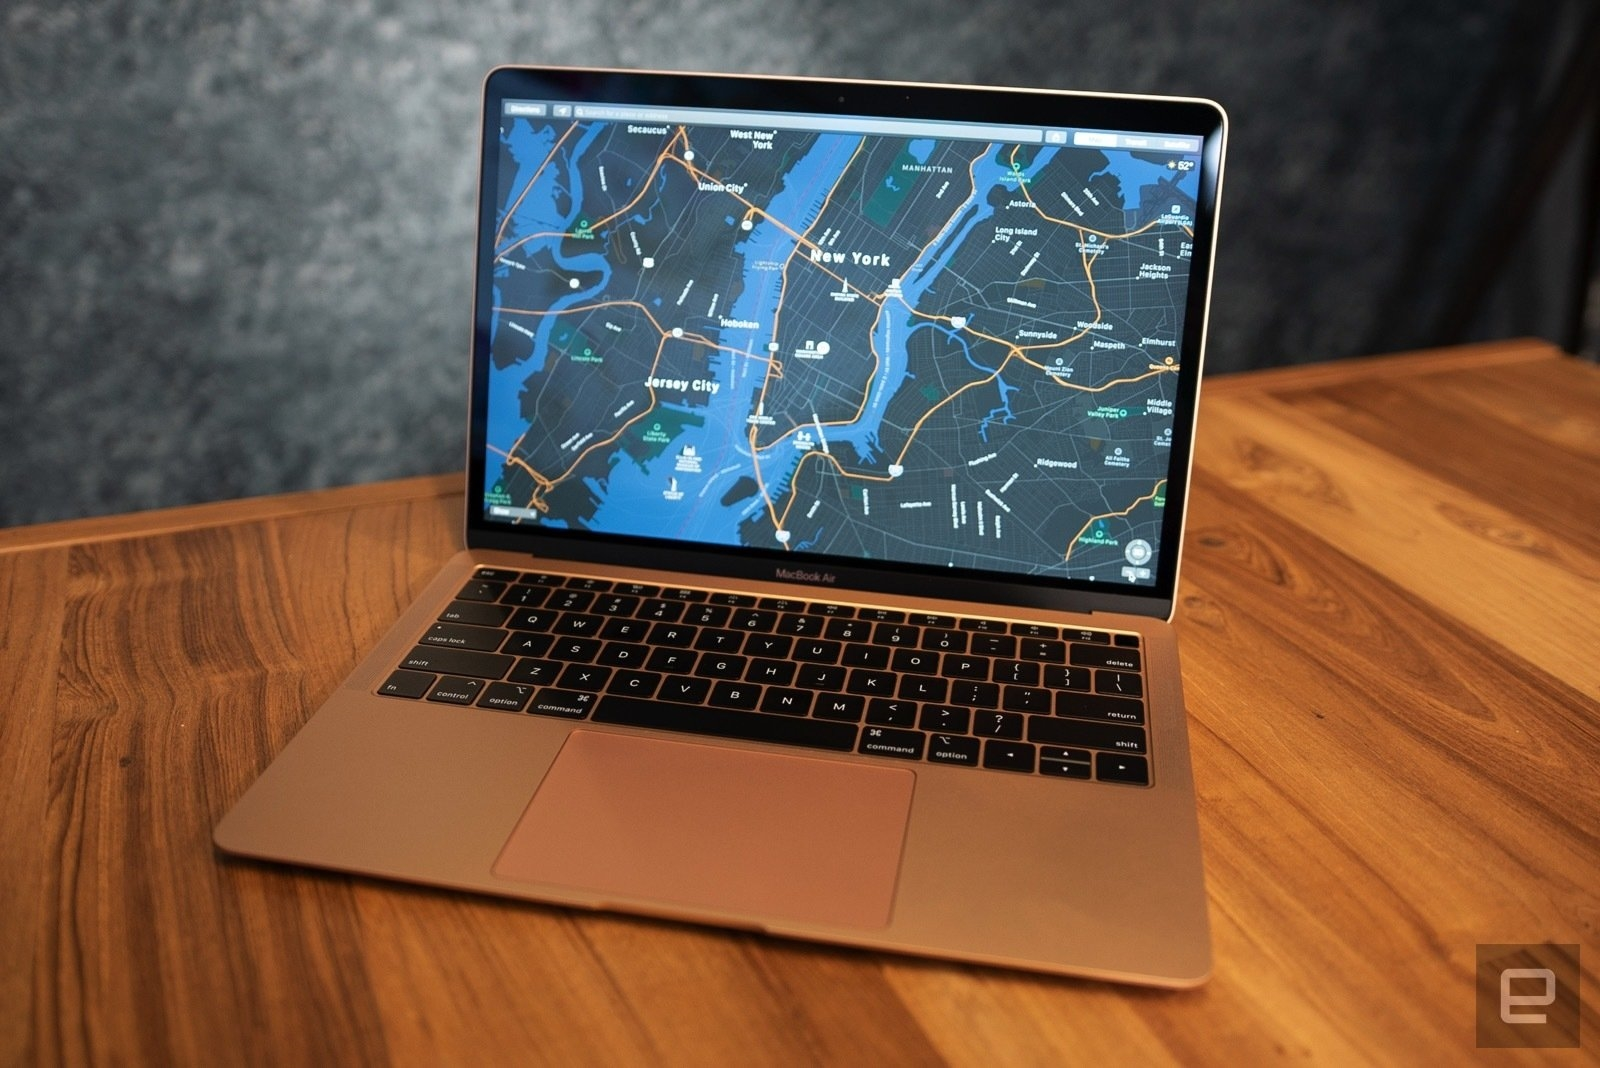 The best user reviews of 2019 | DeviceDaily.com